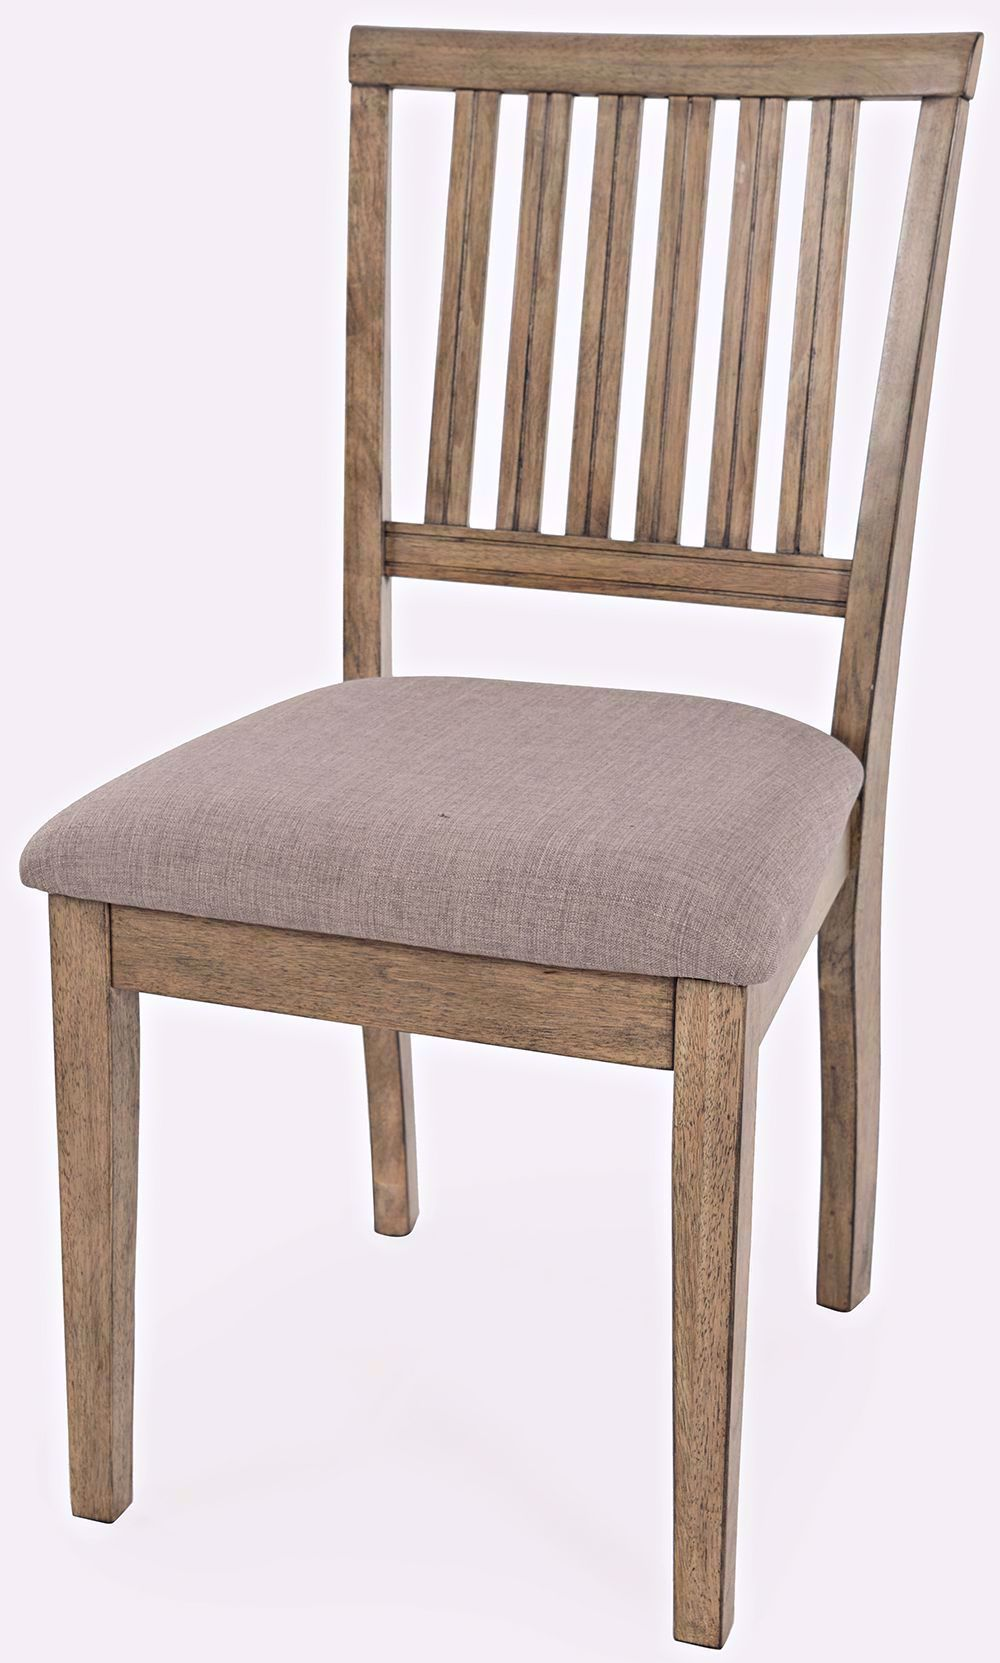 Picture of Prescott Slatback Upholstered Chair